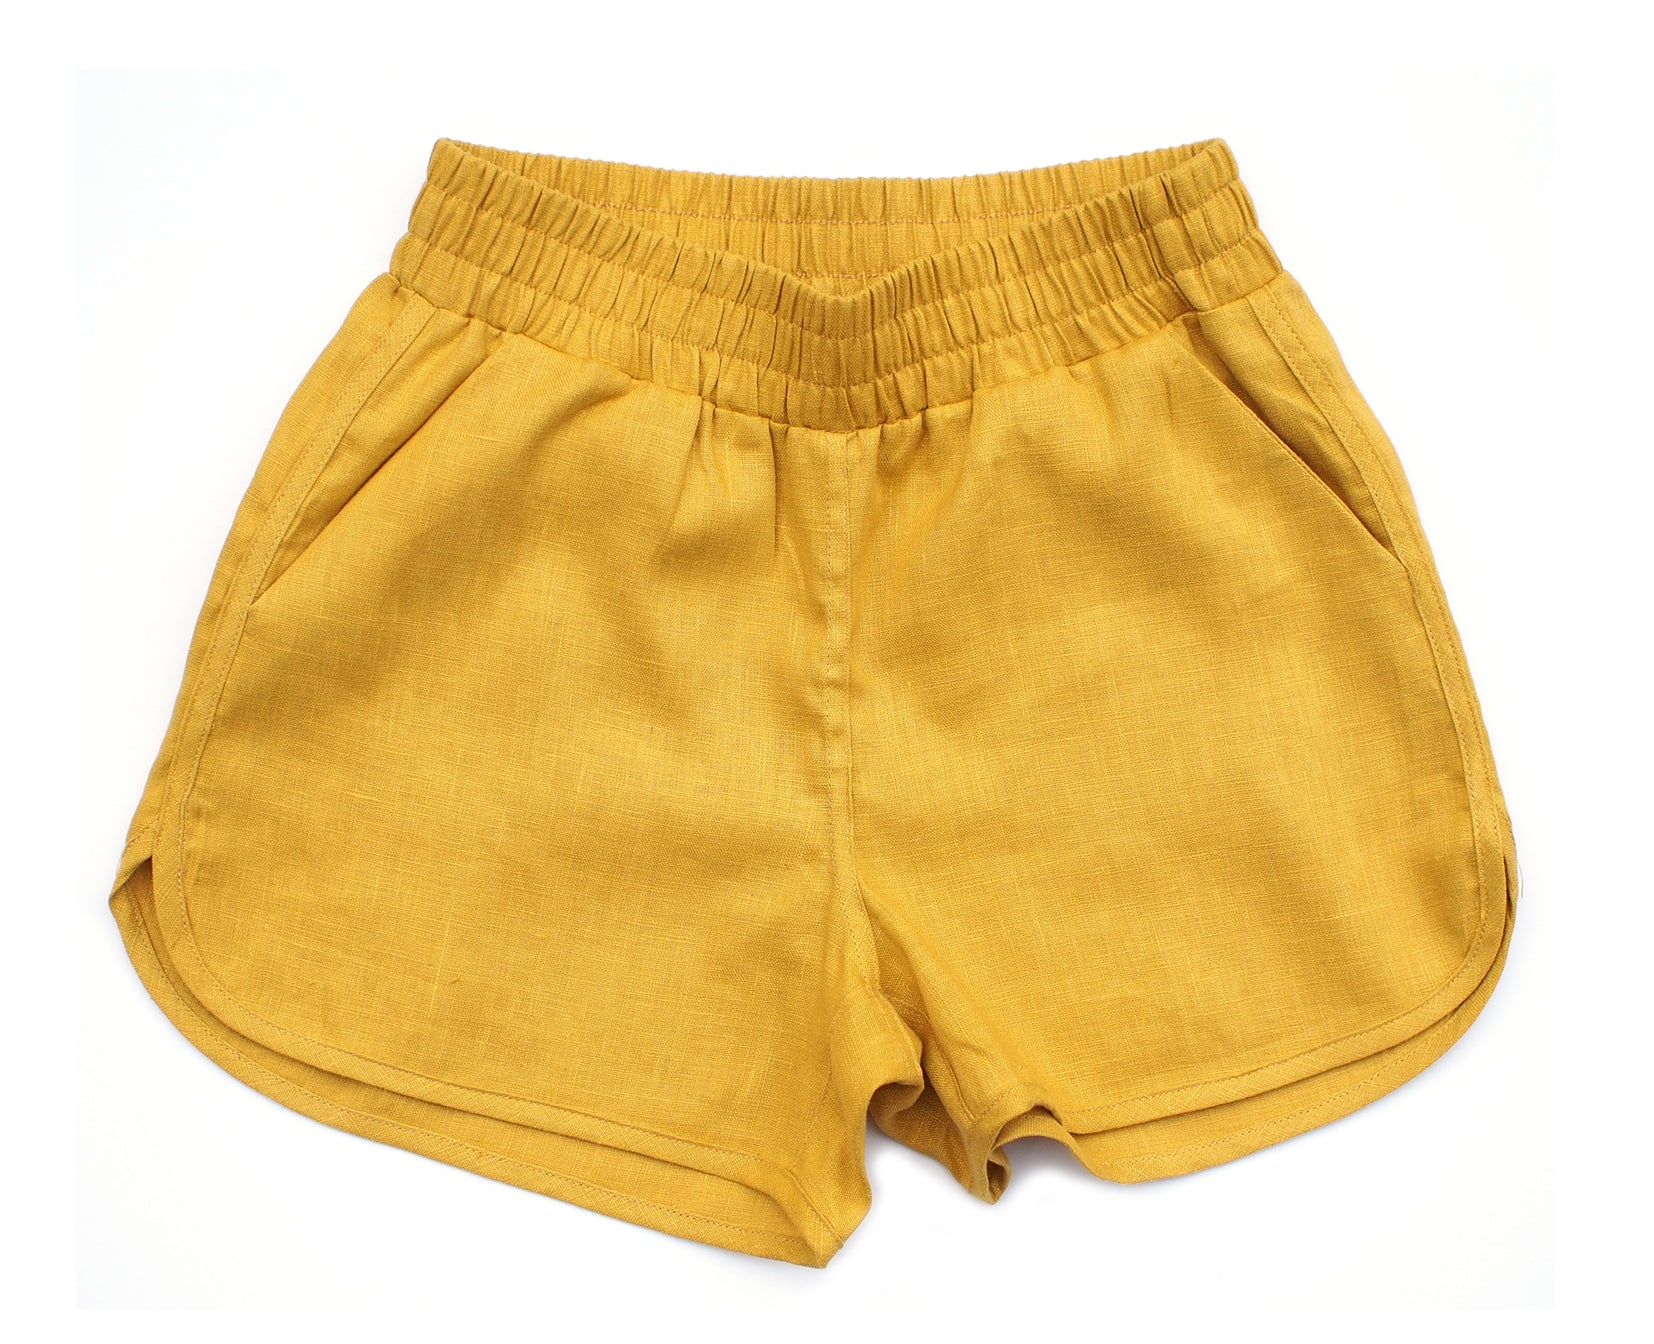 RUNNING SHORTS, GOLDENROD